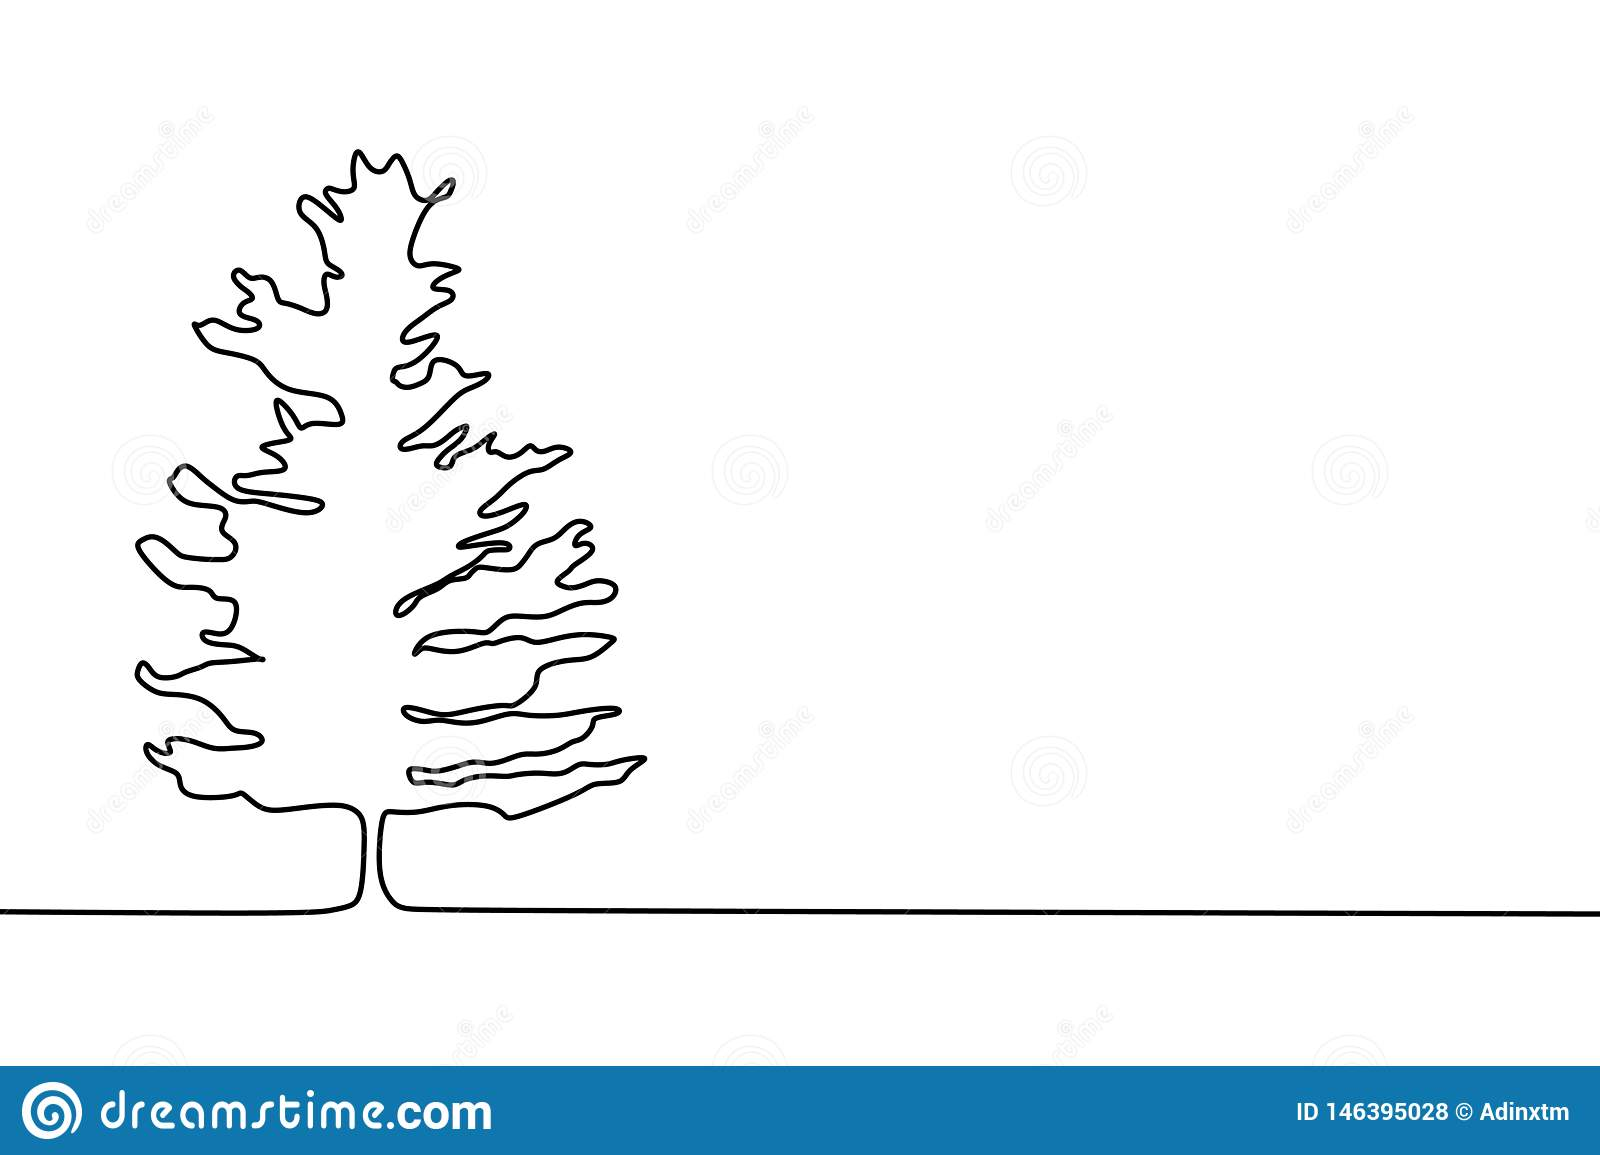 Pine Tree Continuous One Line Drawing Minimalist Design Stock Vector Illustration Of Thin Christmas 146395028